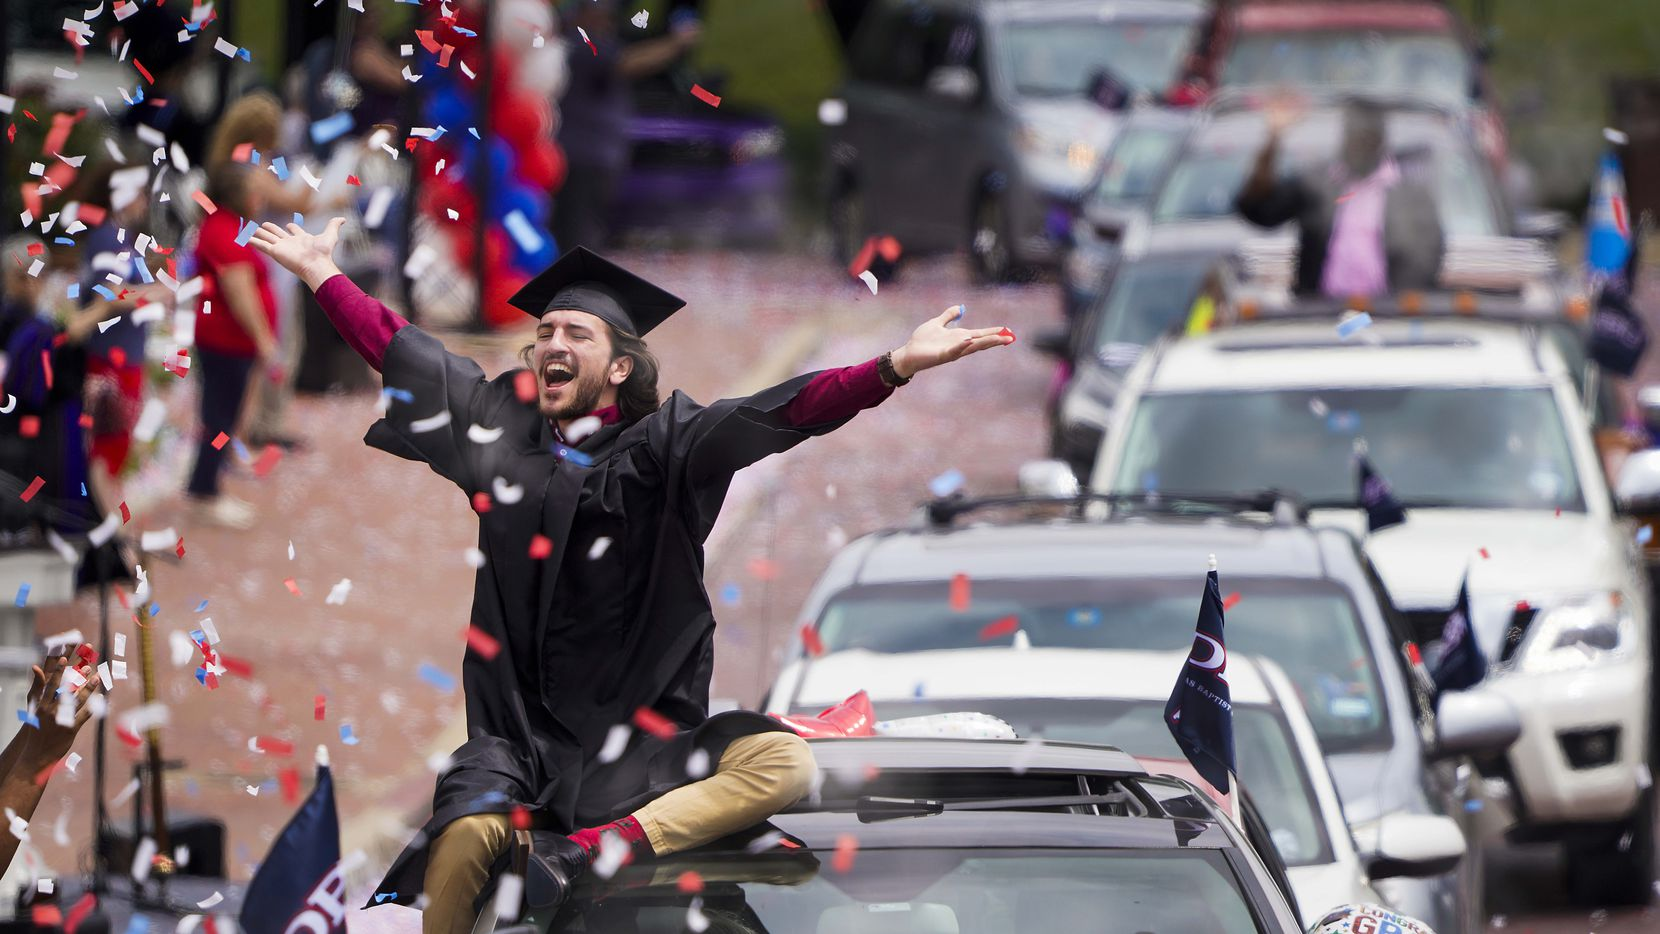 Graduate William Santini celebrated amid raining confetti in a commencement parade at Dallas Baptist University in May. Students heard their names called as they passed Pilgrim Chapel before proceeding to receive their degrees.